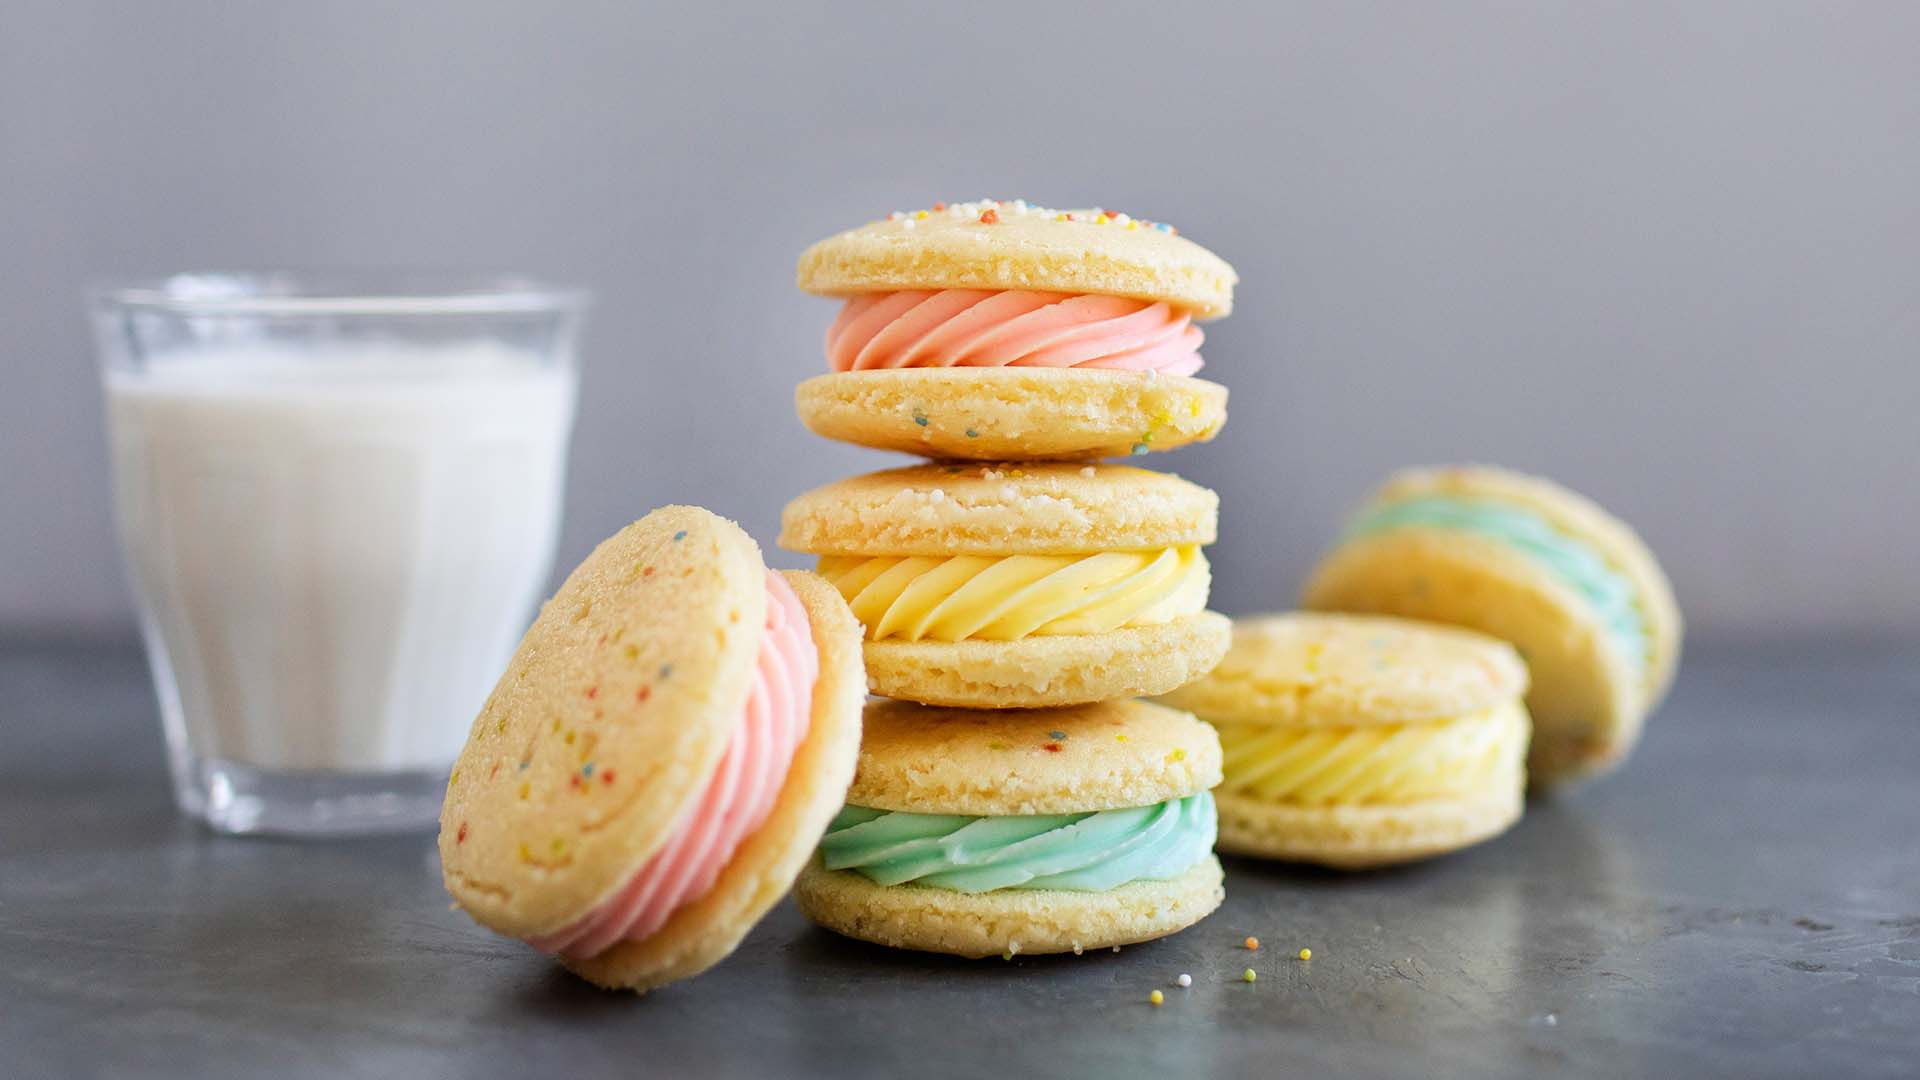 Side shot of stack of faux macarons with green and pink icing centre next to a small glass of milk.